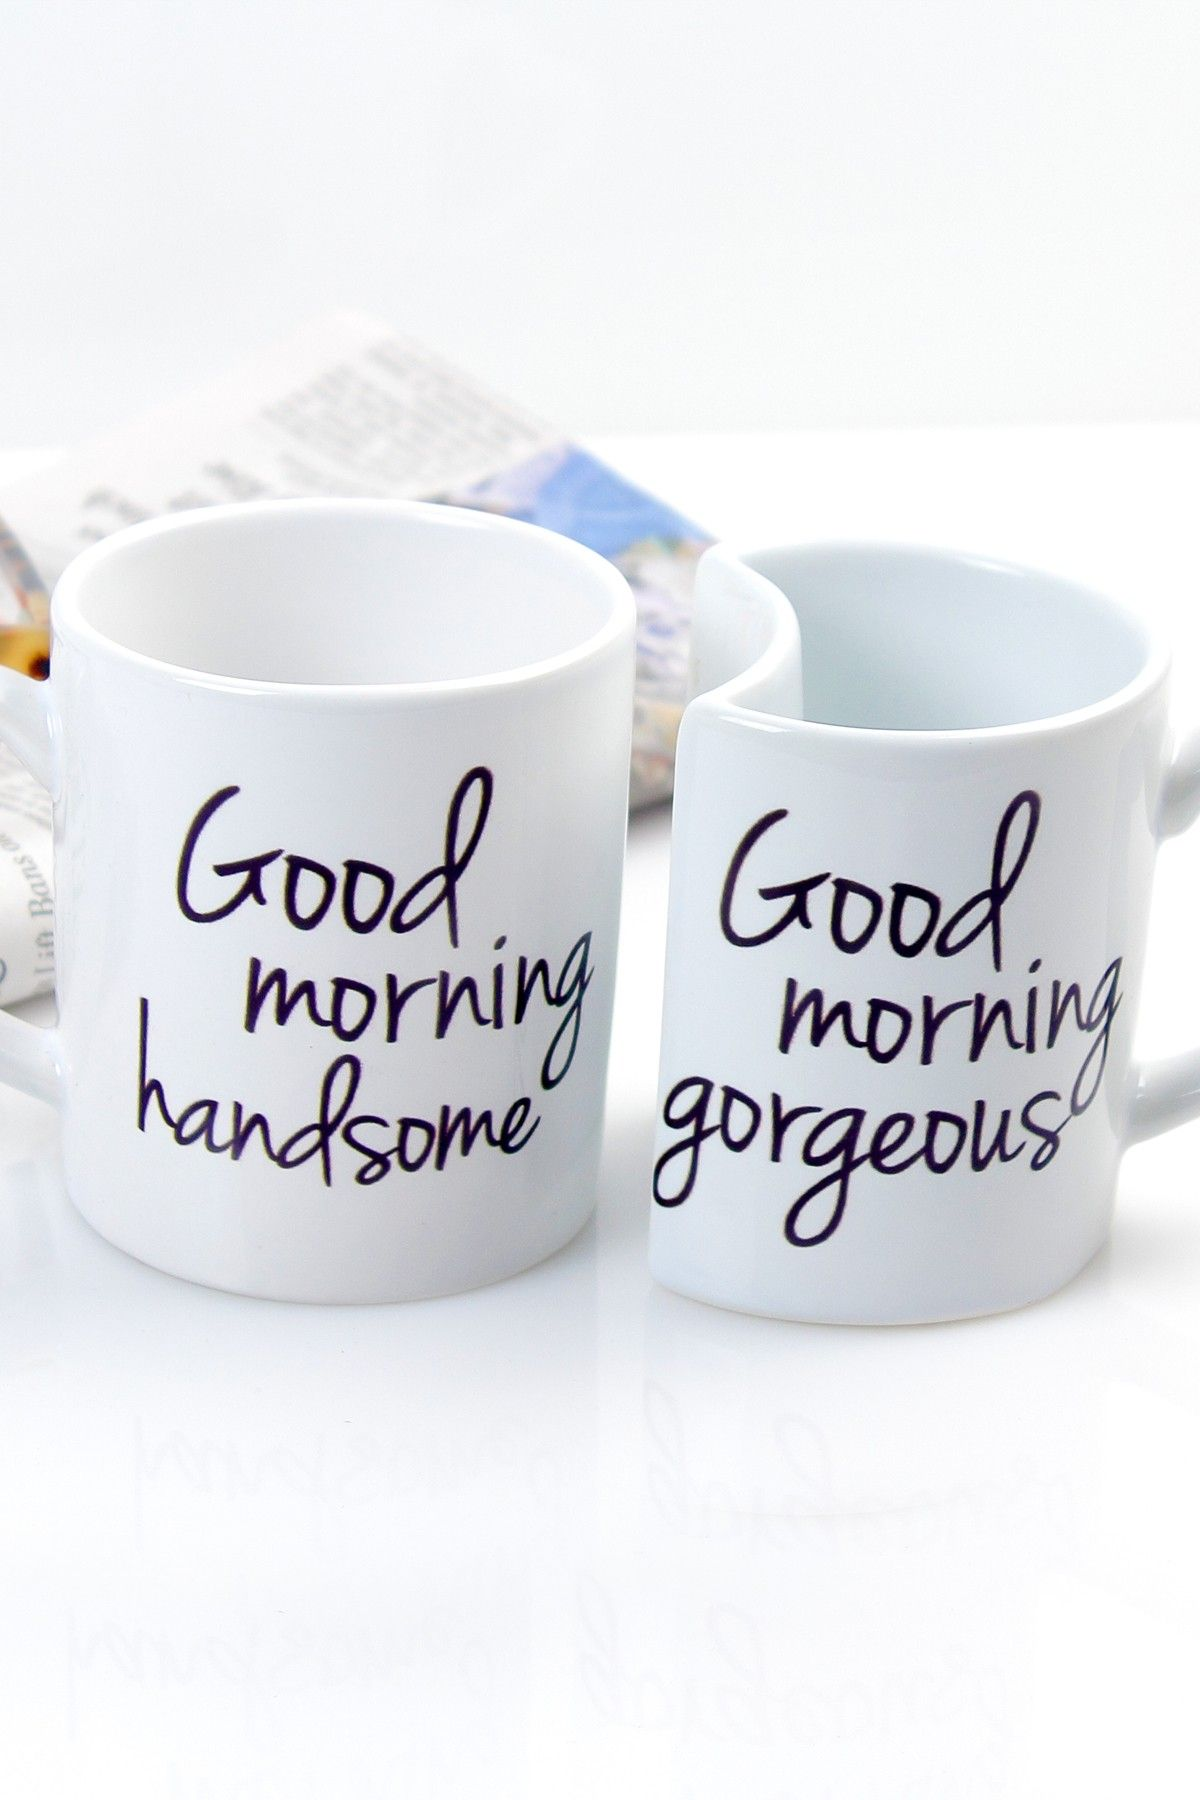 smart idea porcelain coffee mugs. Enjoy your morning time even more with our adorable Good Morning Coffee Mugs  Sold in a set of two his and her styled mugs the ceramic stoneware Hand written coffee I sure wish my husband would drink